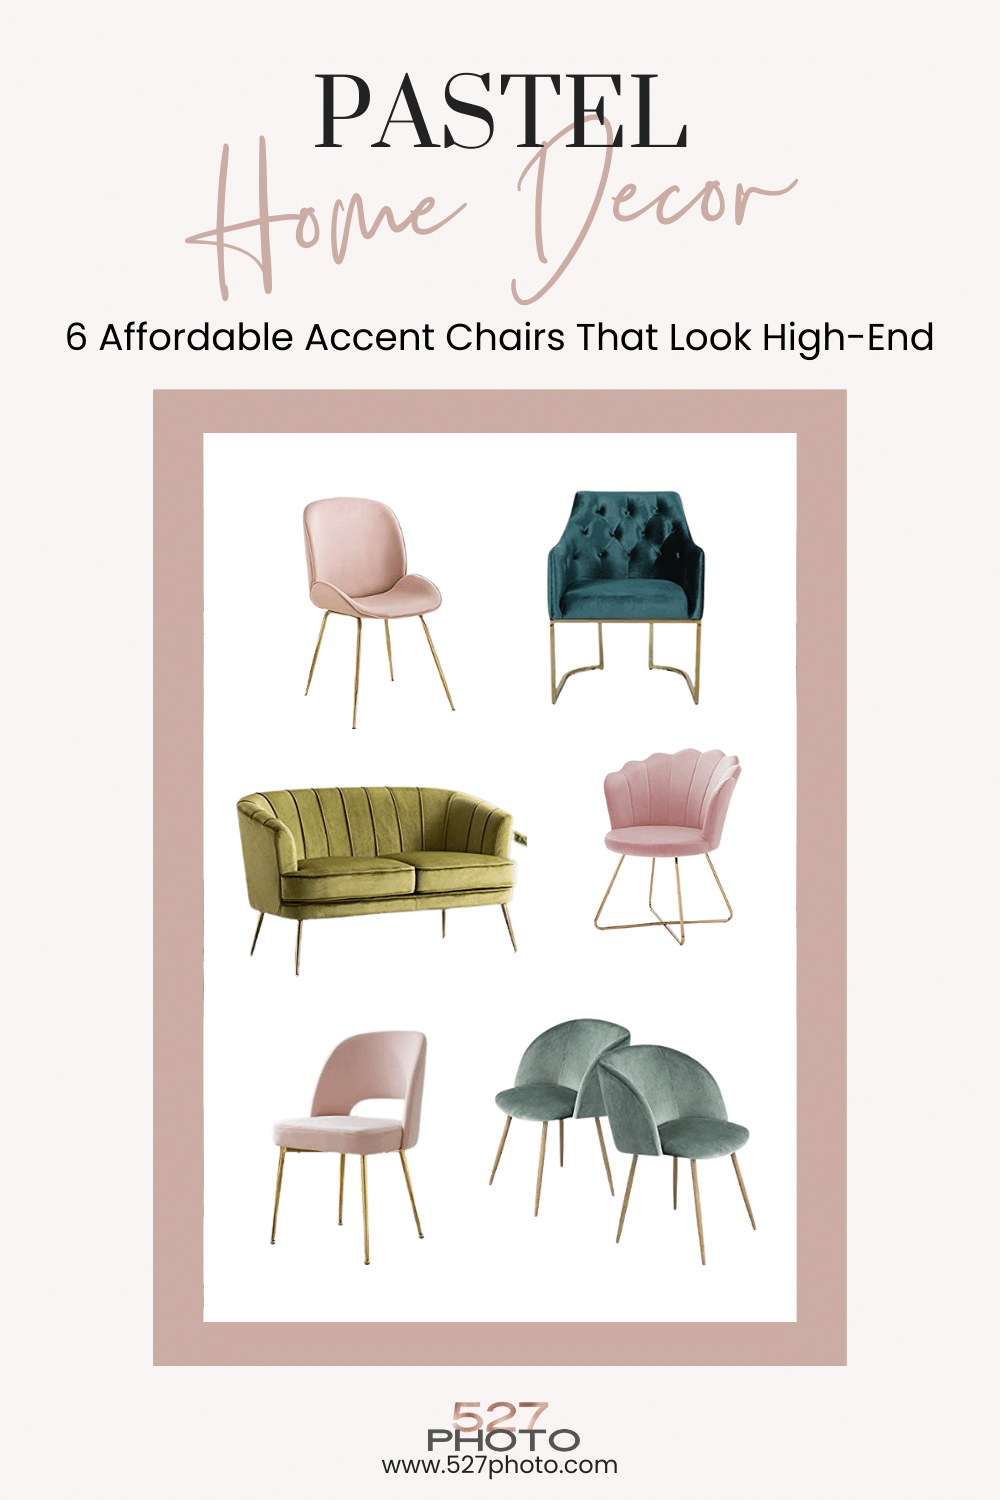 Affordable pastel accent chairs